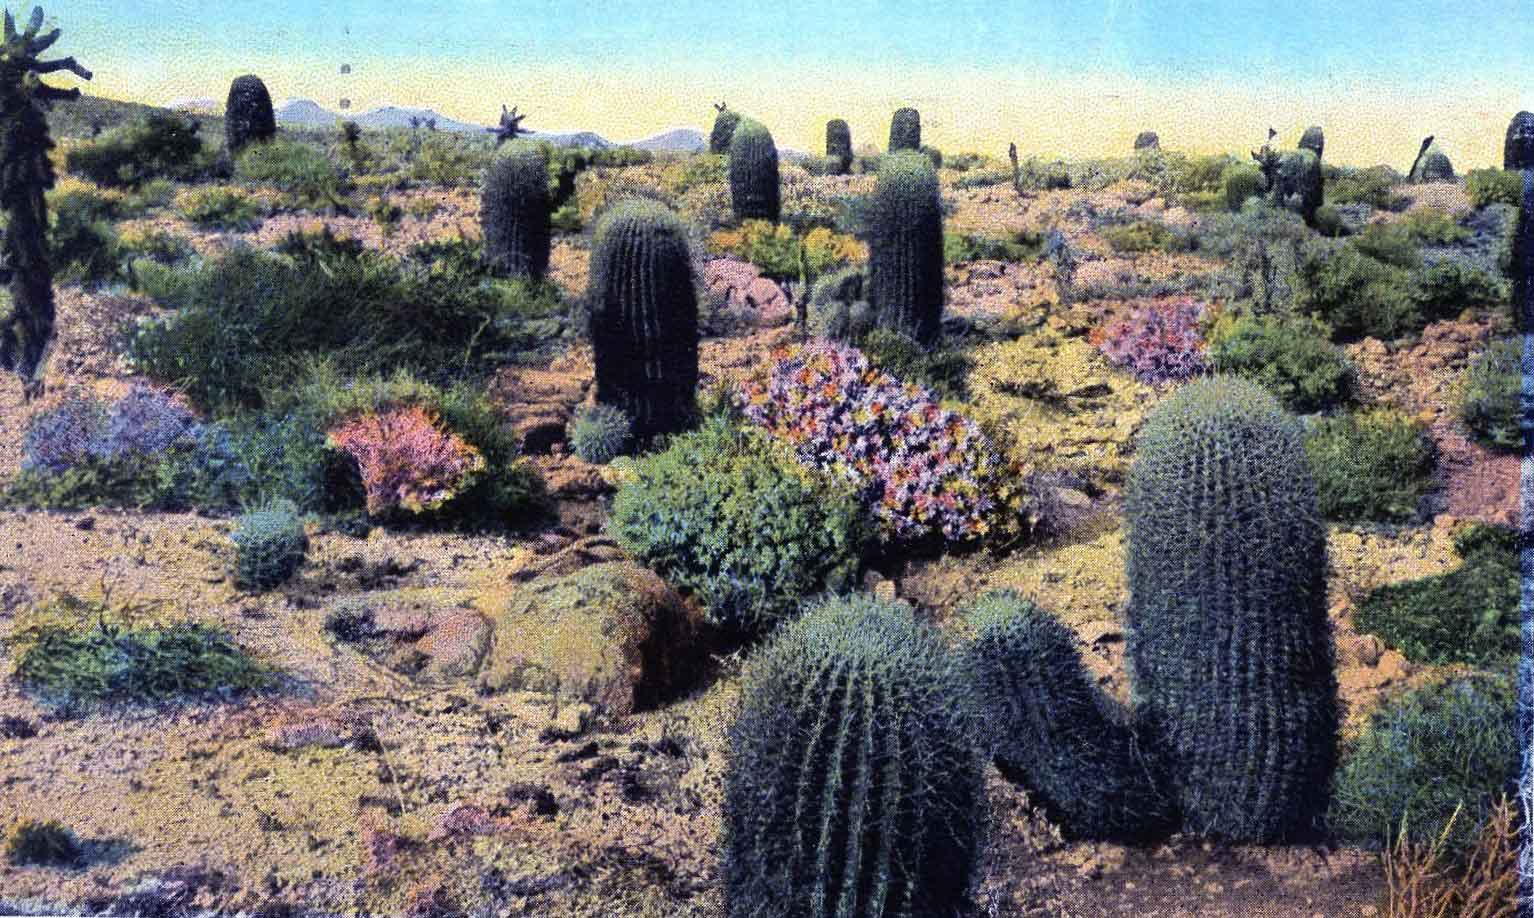 The rich history of desert gardening the Coachella Valley and beyond